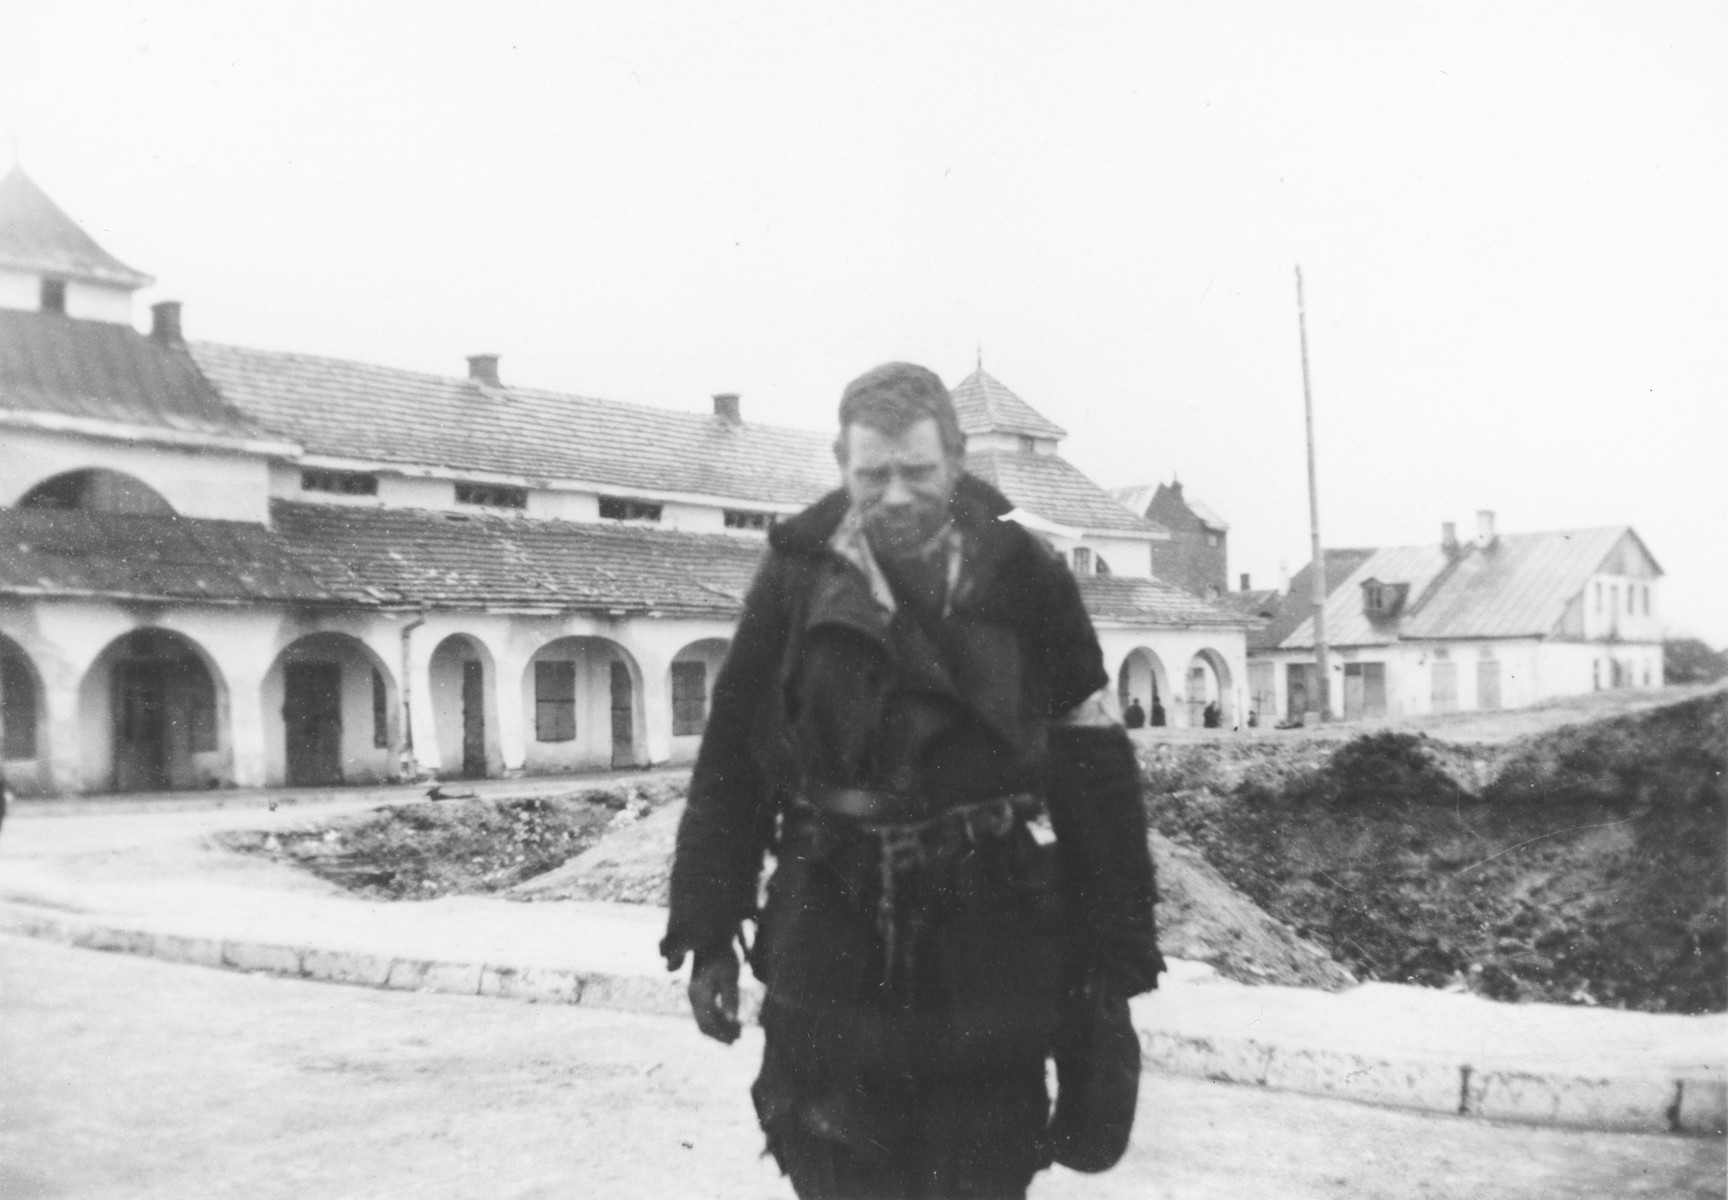 A destitute Jewish man in a torn jacket with an armband stands outside a large building in an unidentified town in Poland.